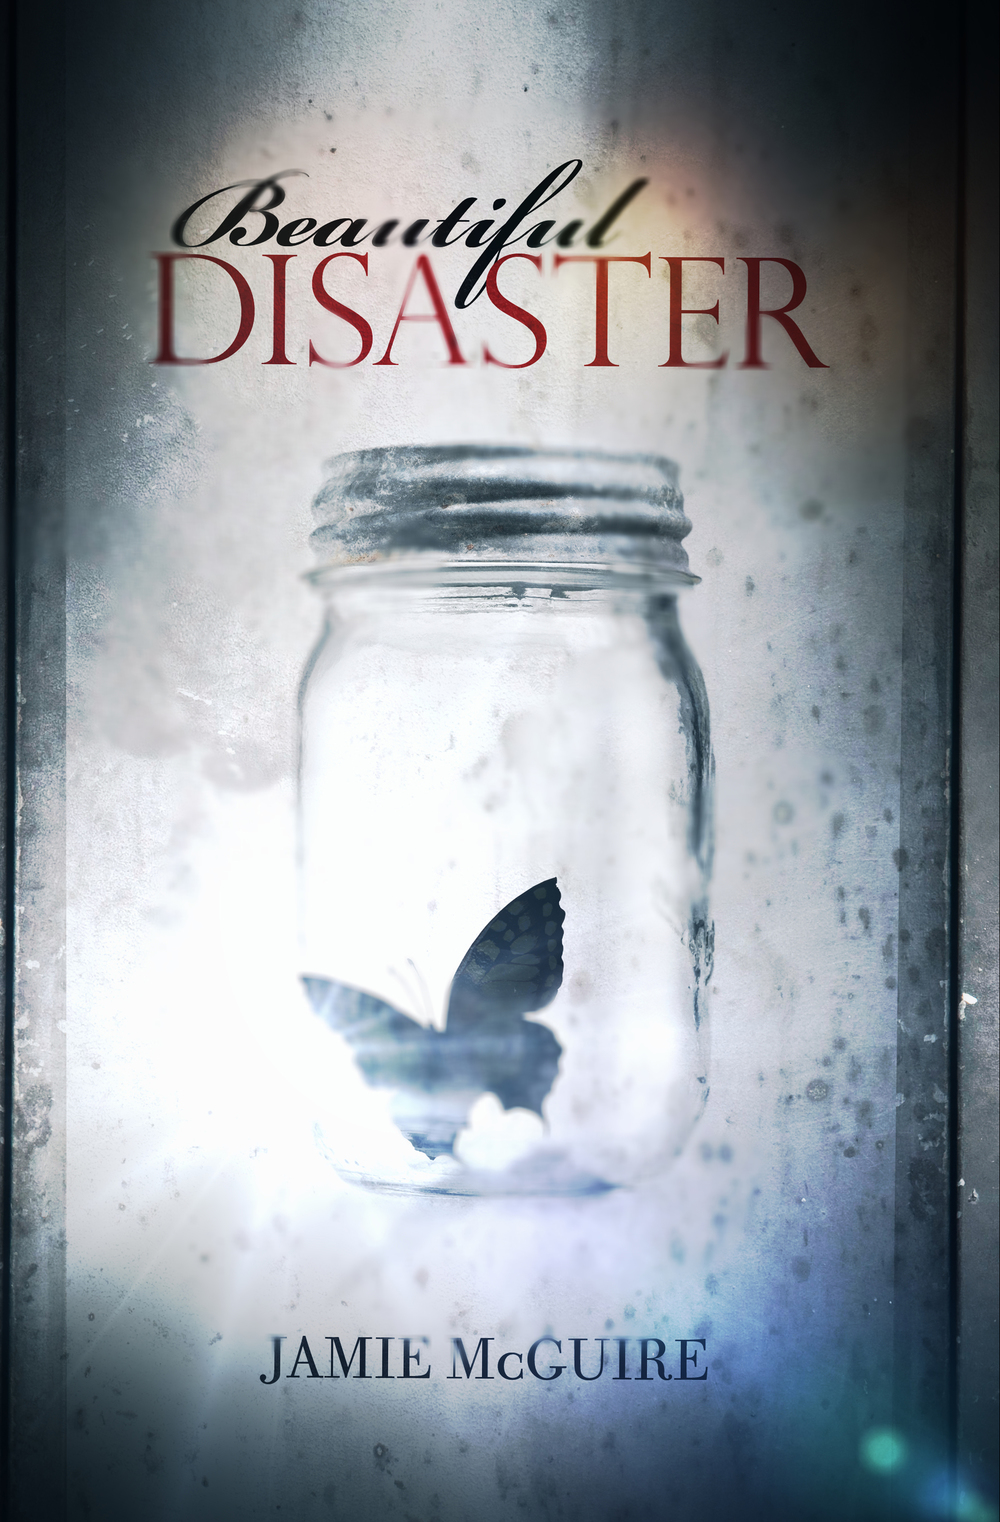 Beautiful-Disaster-Cover-2.jpg